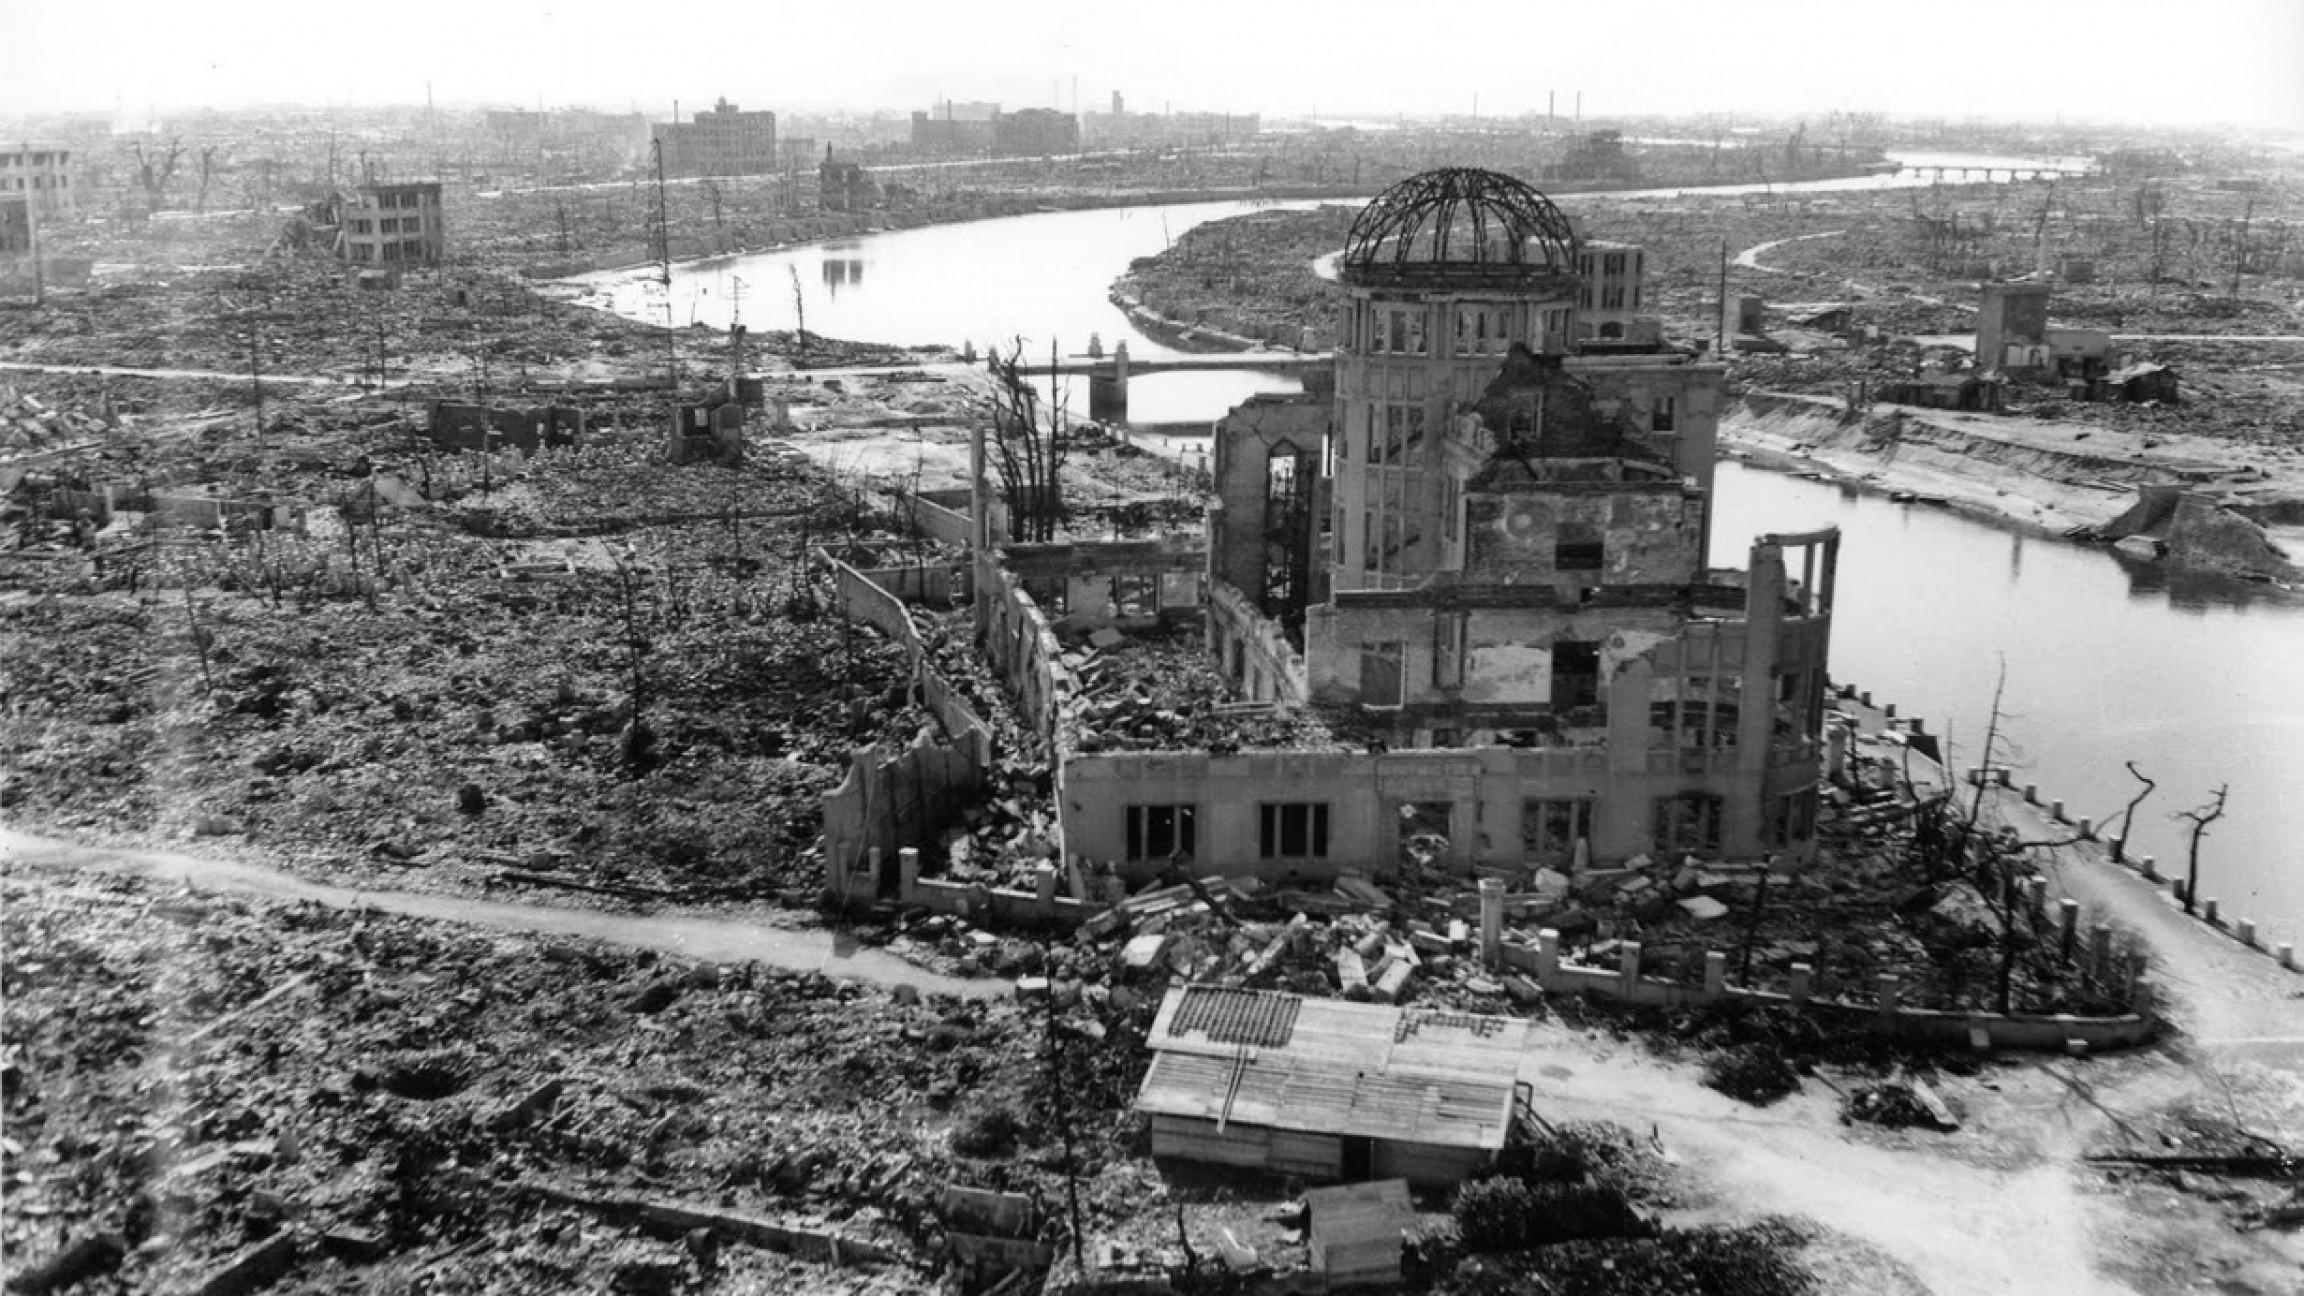 Photo of the Hiroshima bombing aftermath